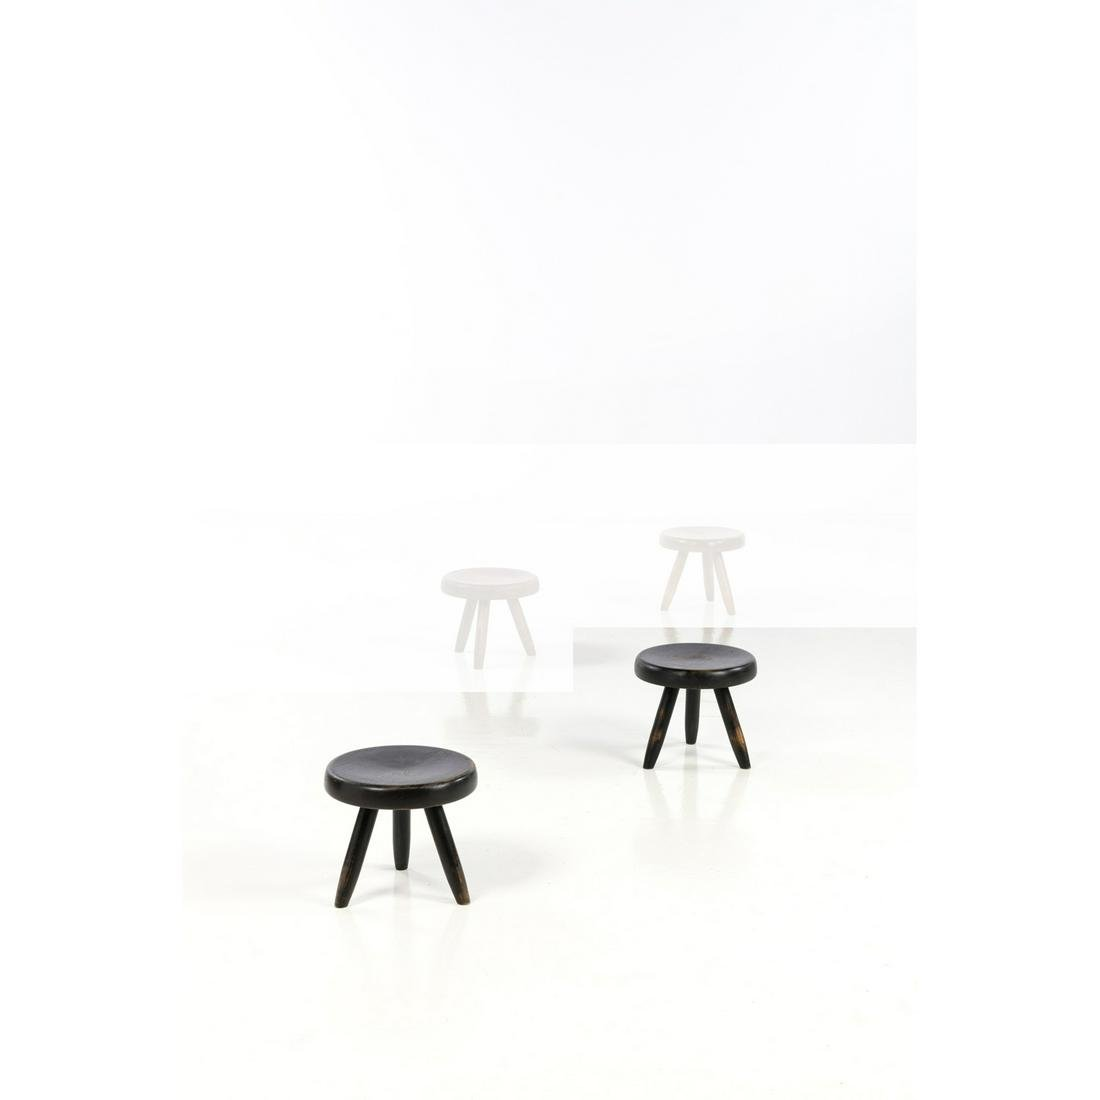 Charlotte Perriand (1903-1999) Berger Pair of stools